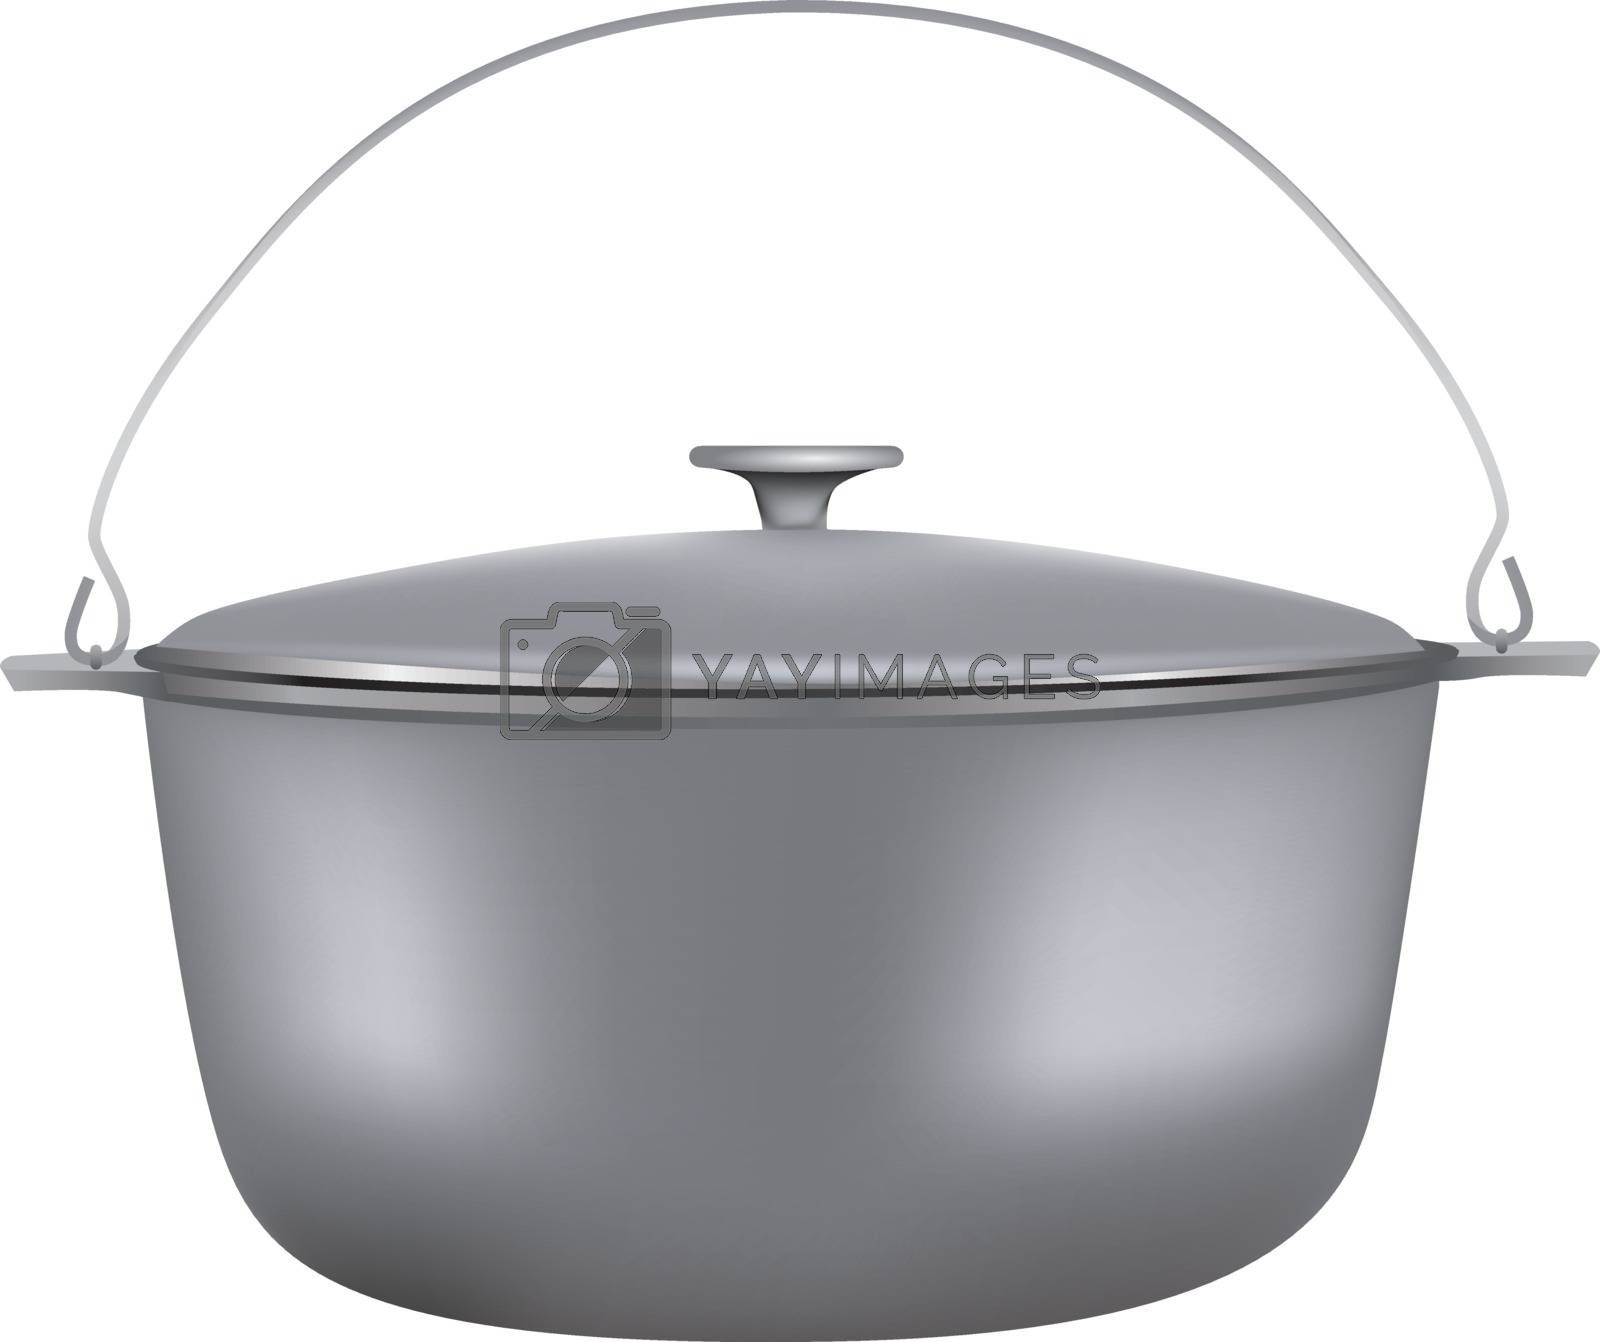 Travel cooking pot with lid and bracket.